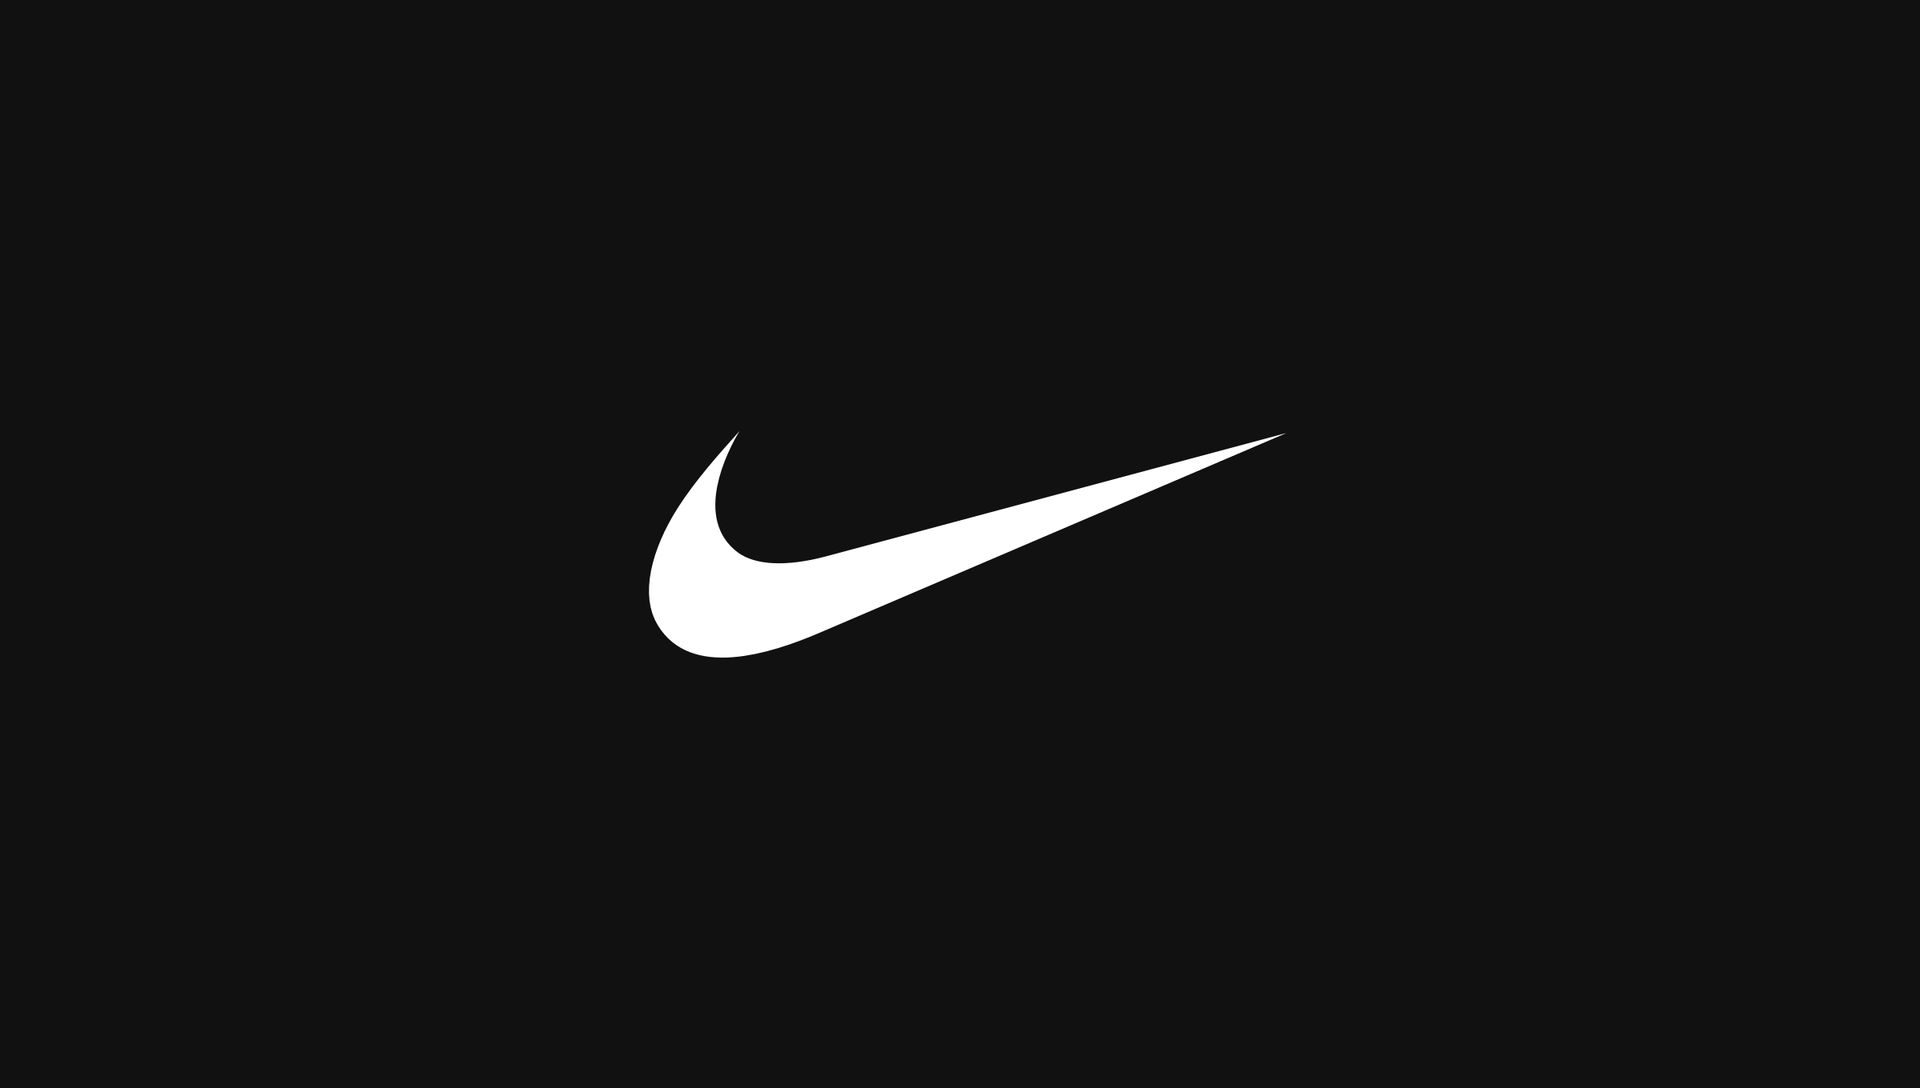 Lolli Announces That Users Can Earn Bitcoin Back with Nike ✔️